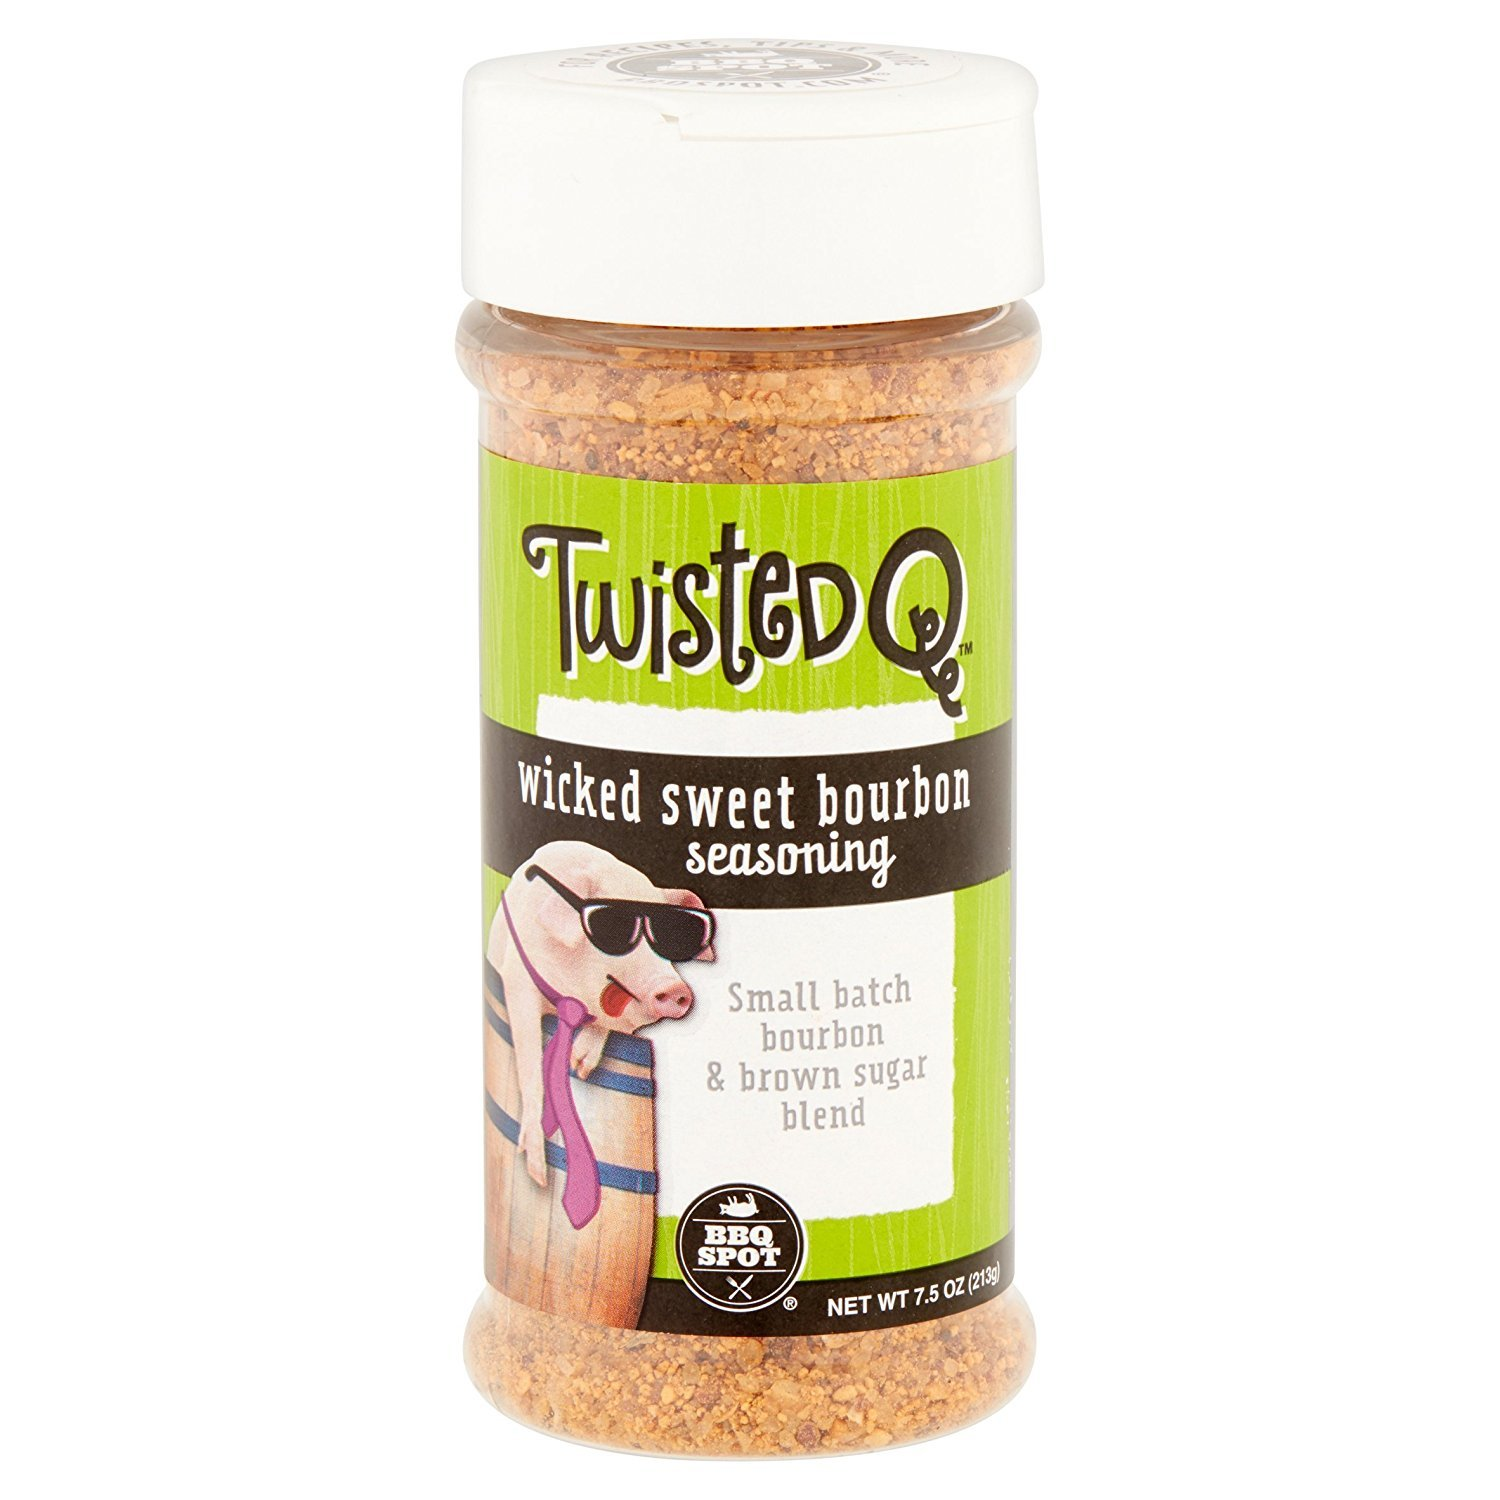 Twisted Q Wicked Sweet Bourbon Seasoning, 7.5 oz (Pack of 2)